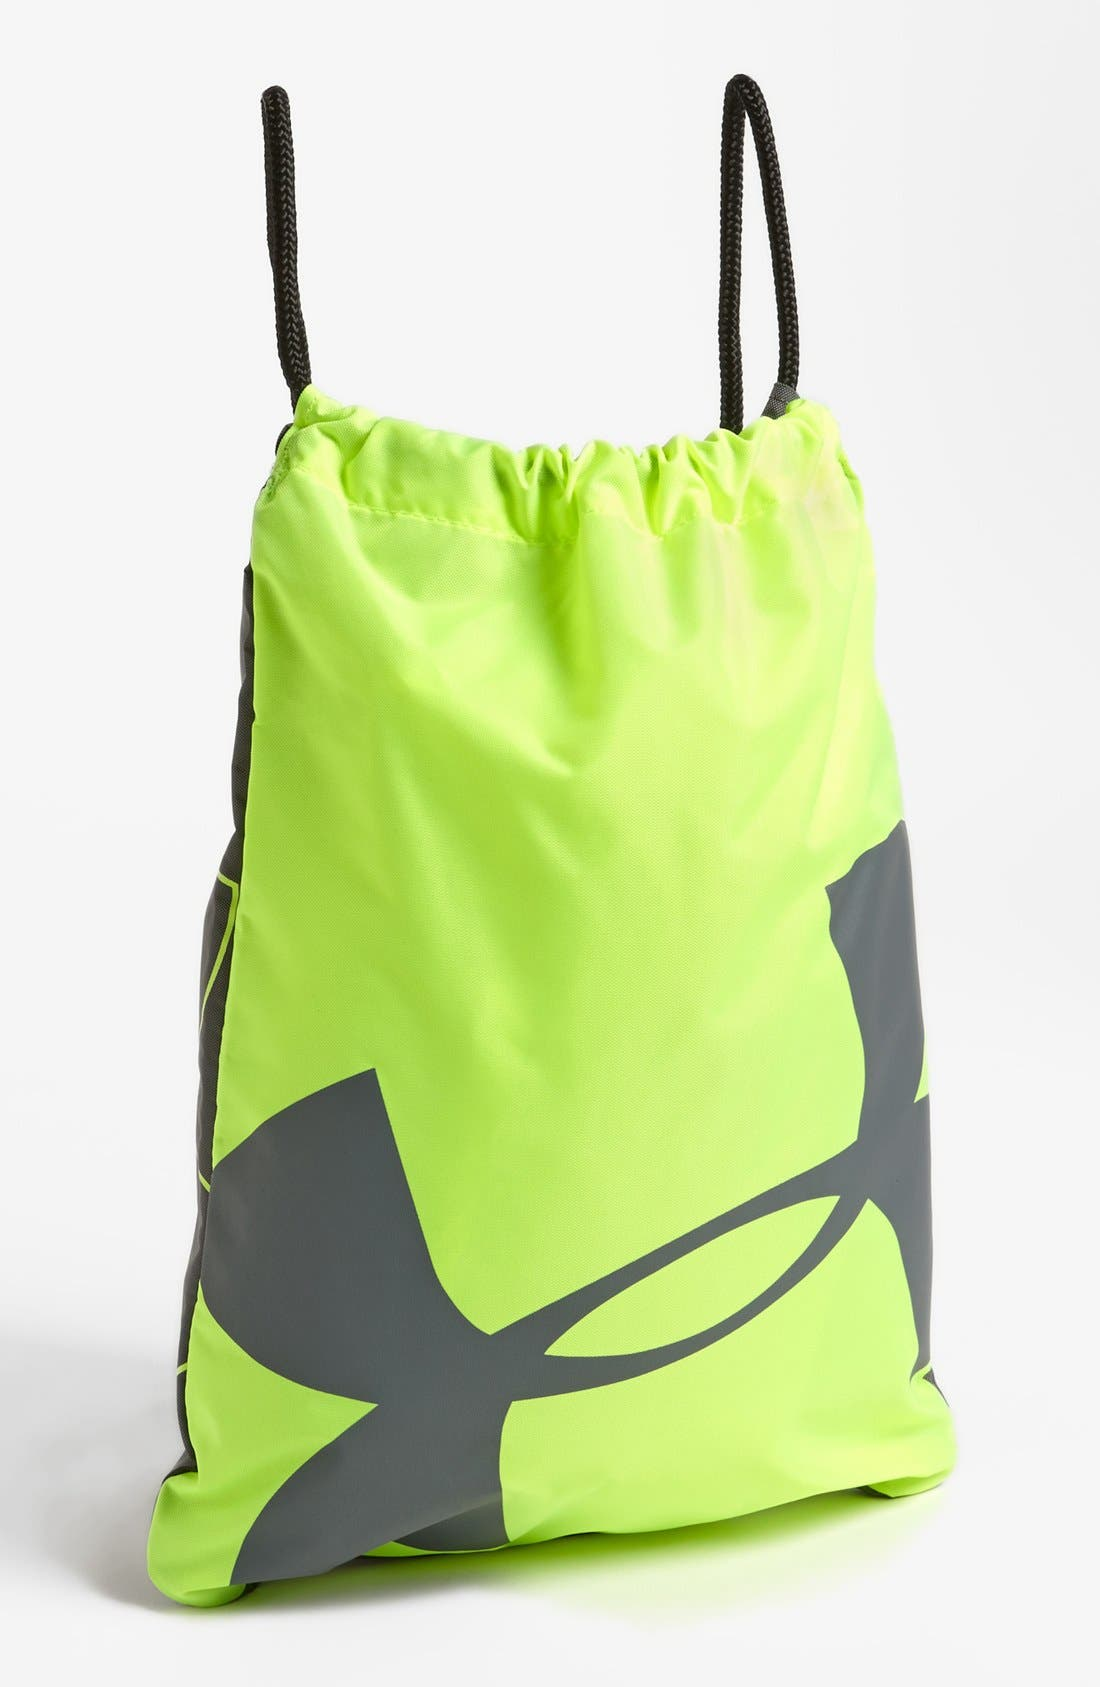 Alternate Image 1 Selected - Under Armour 'Dauntless' Drawstring Backpack